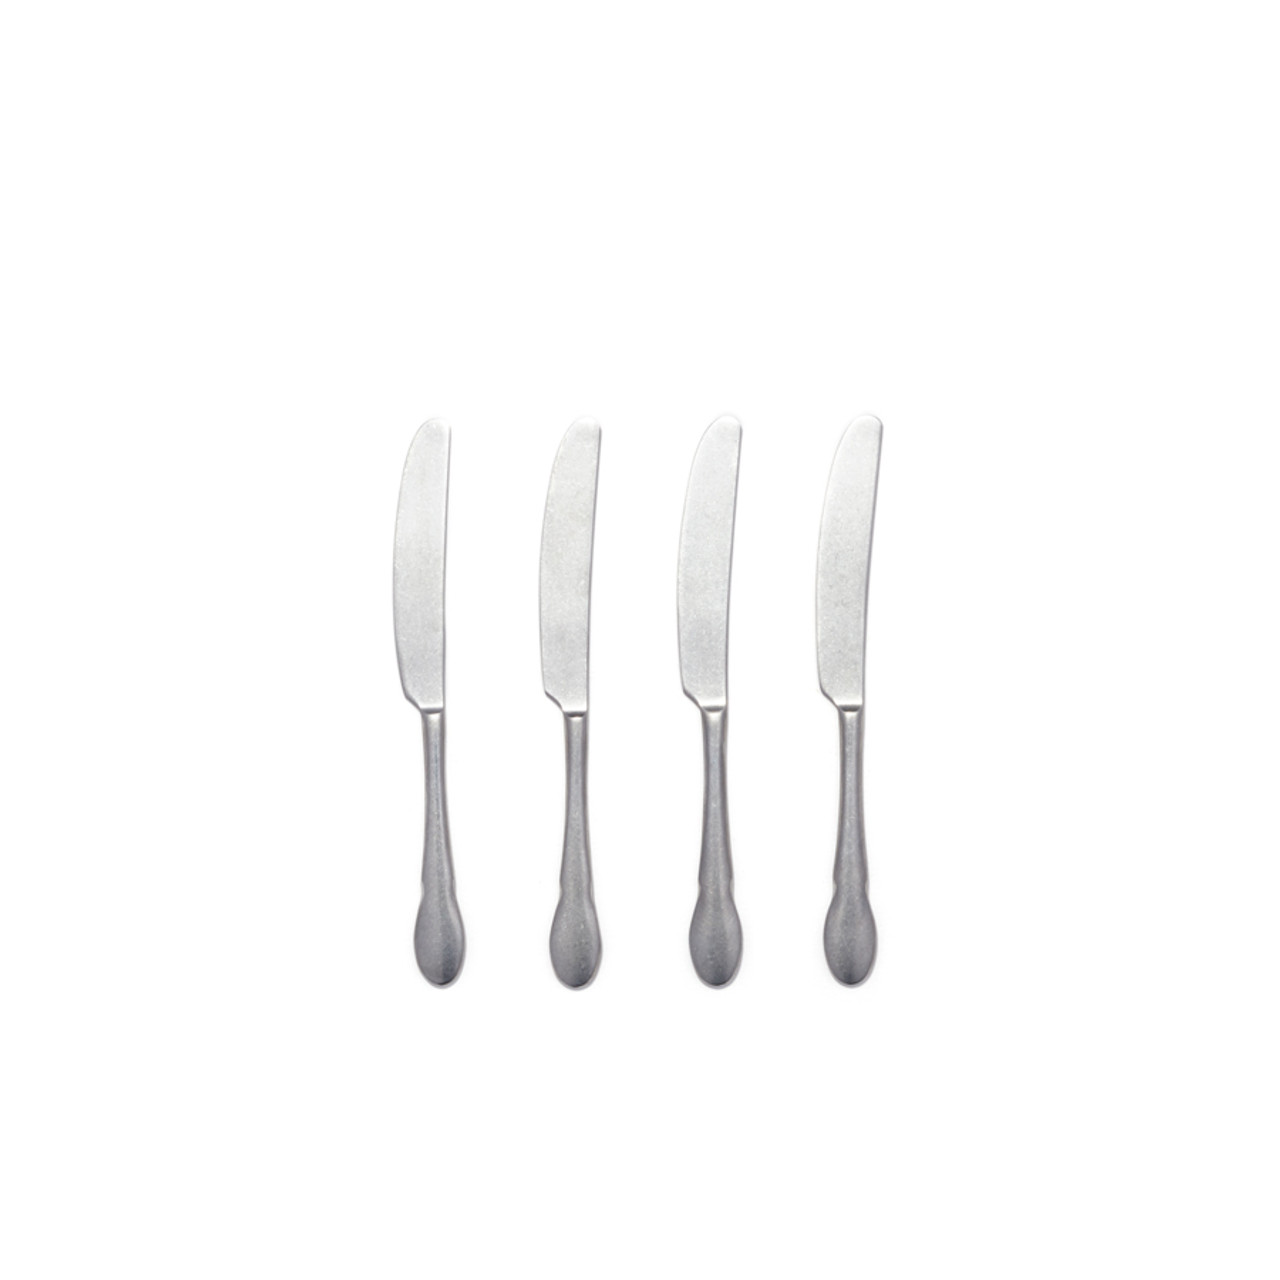 Ash - 4 piece spreader set